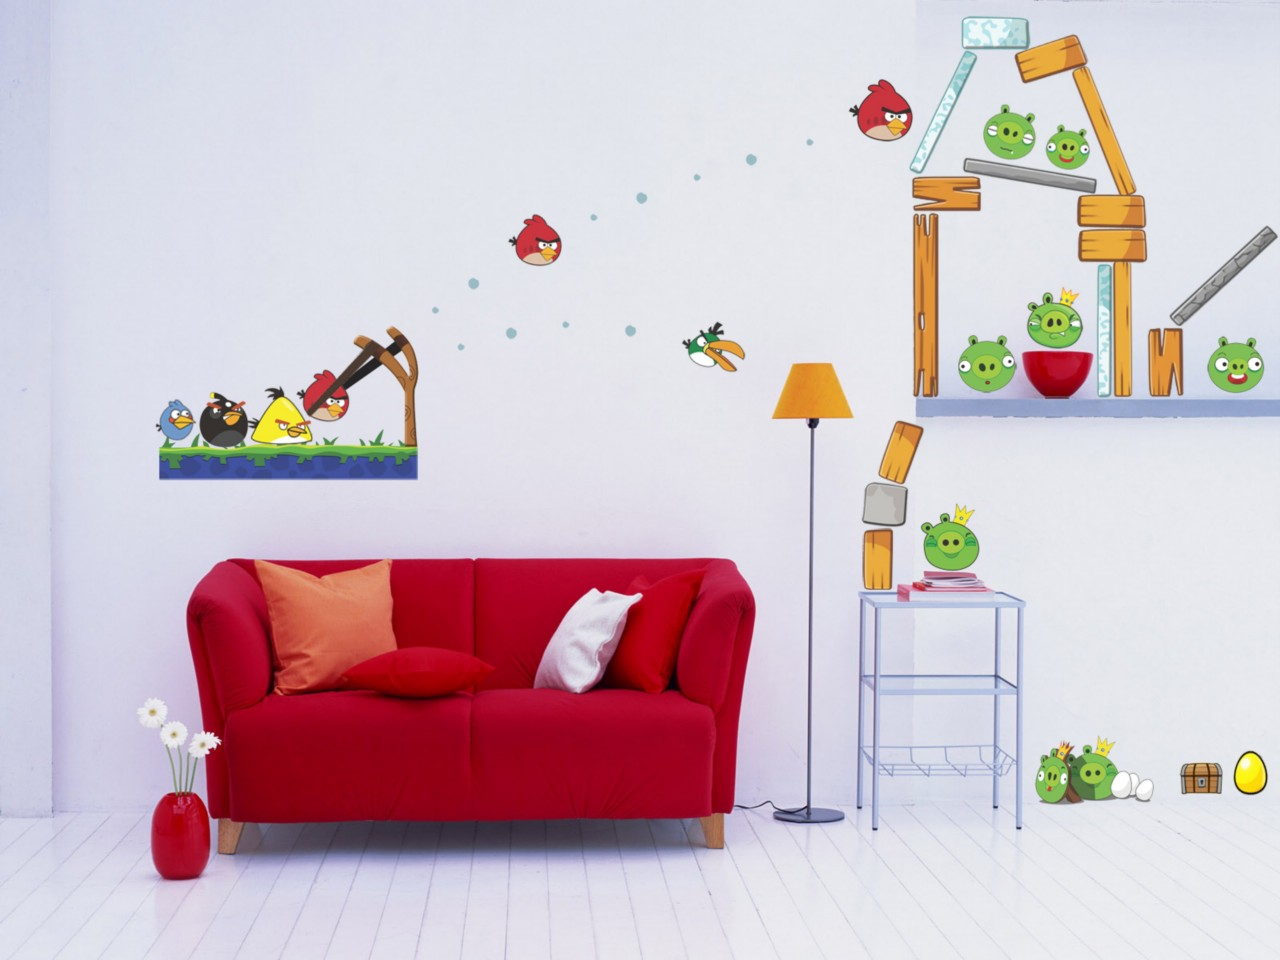 Huge angry birds decal removable giant wall sticker mural for Angry bird wall mural